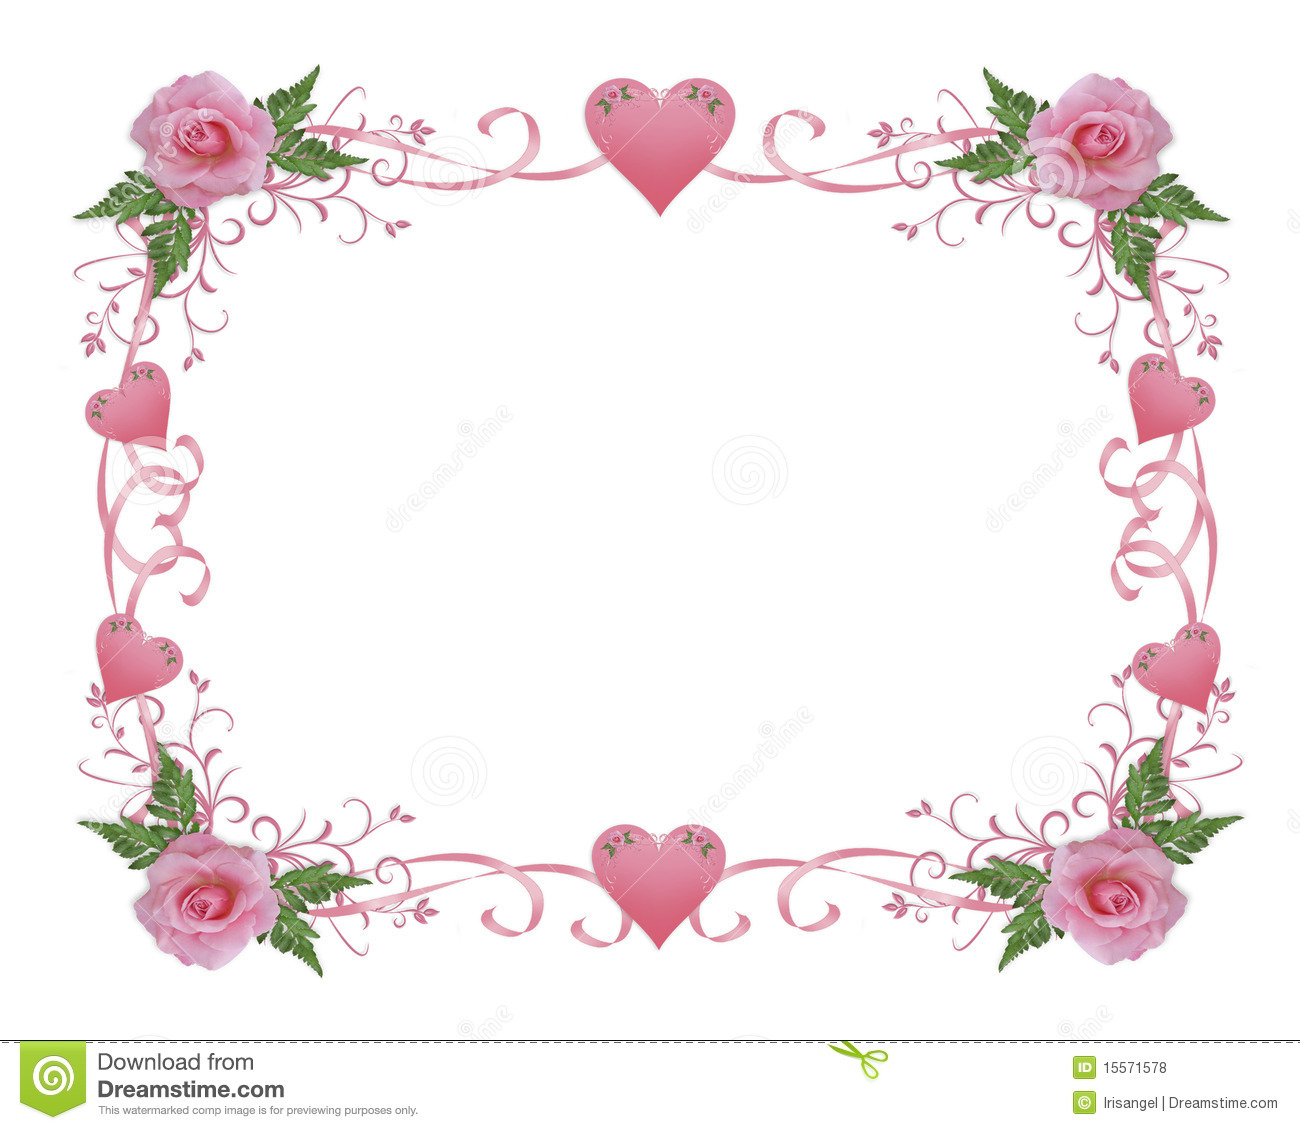 wedding invitation border pink rose stock illustration